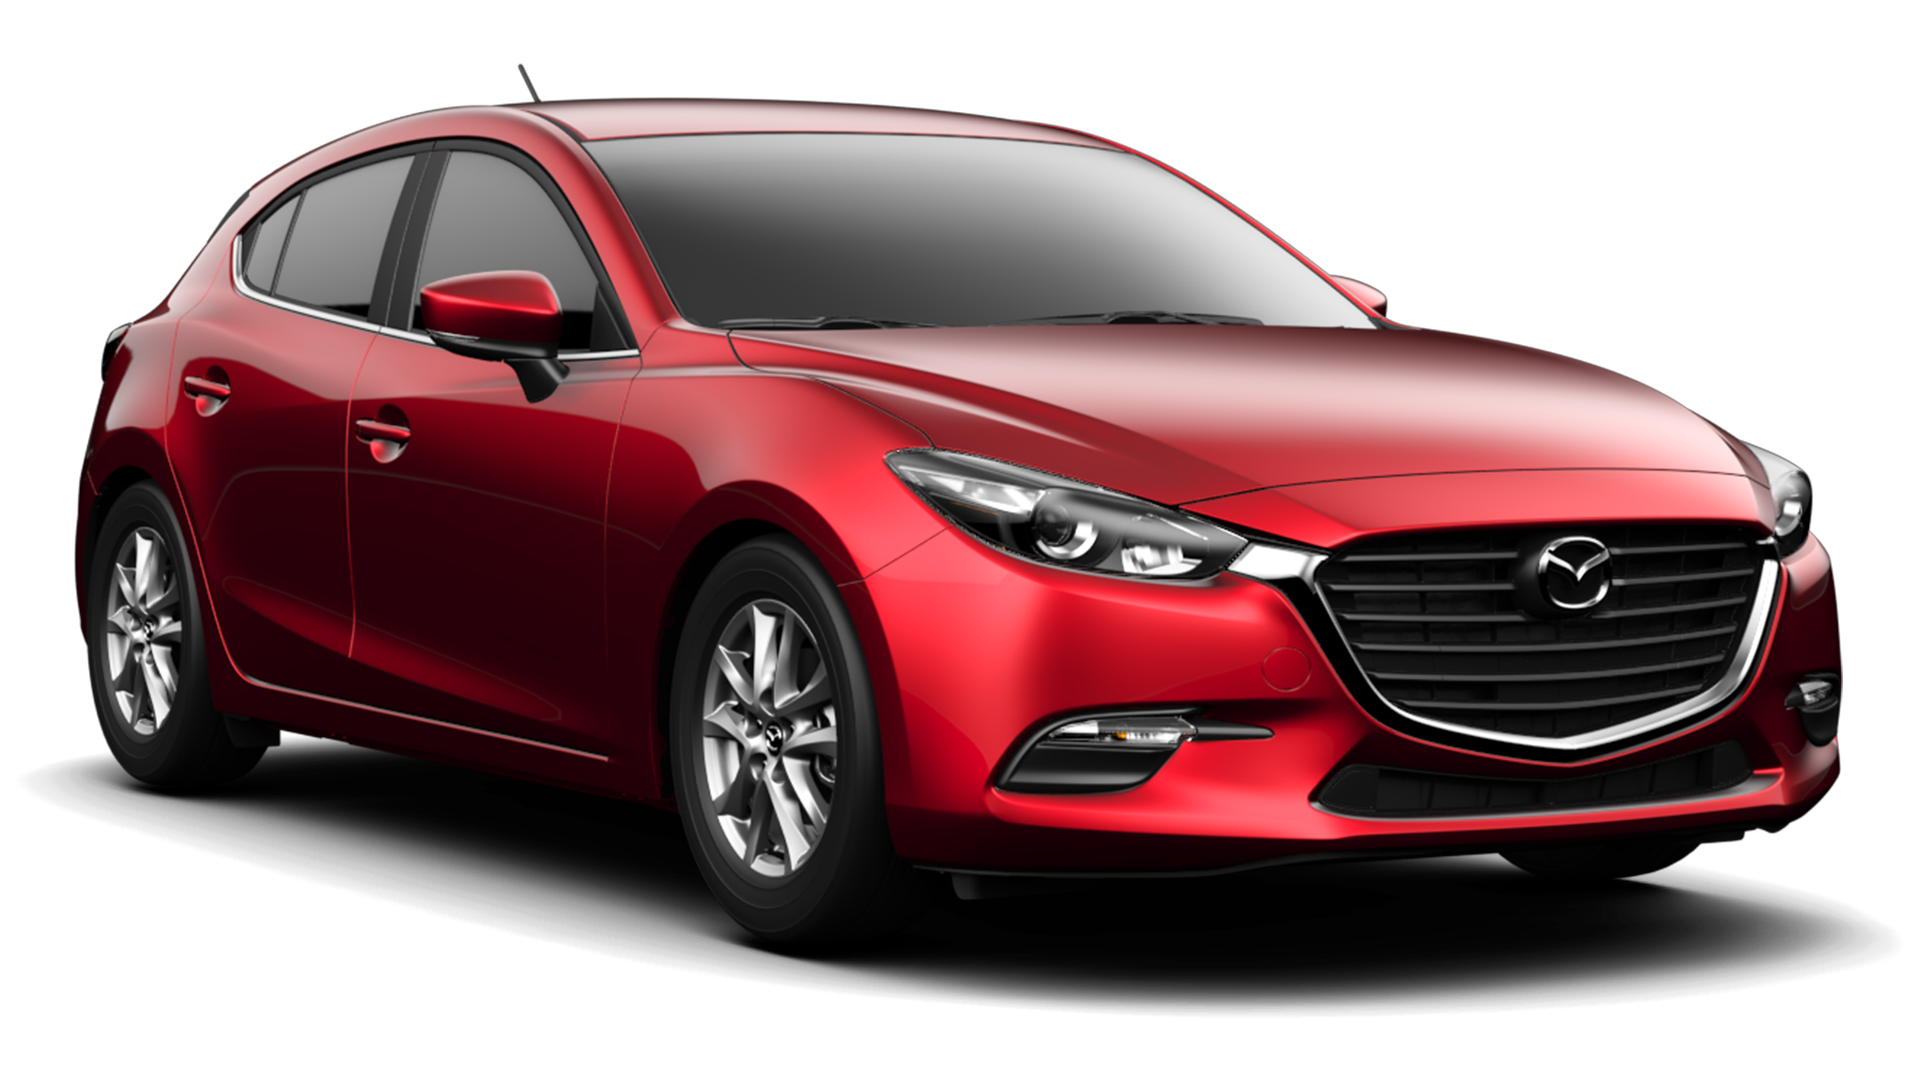 2017 mazda mazda3 5 door prices incentives dealers autos post. Black Bedroom Furniture Sets. Home Design Ideas